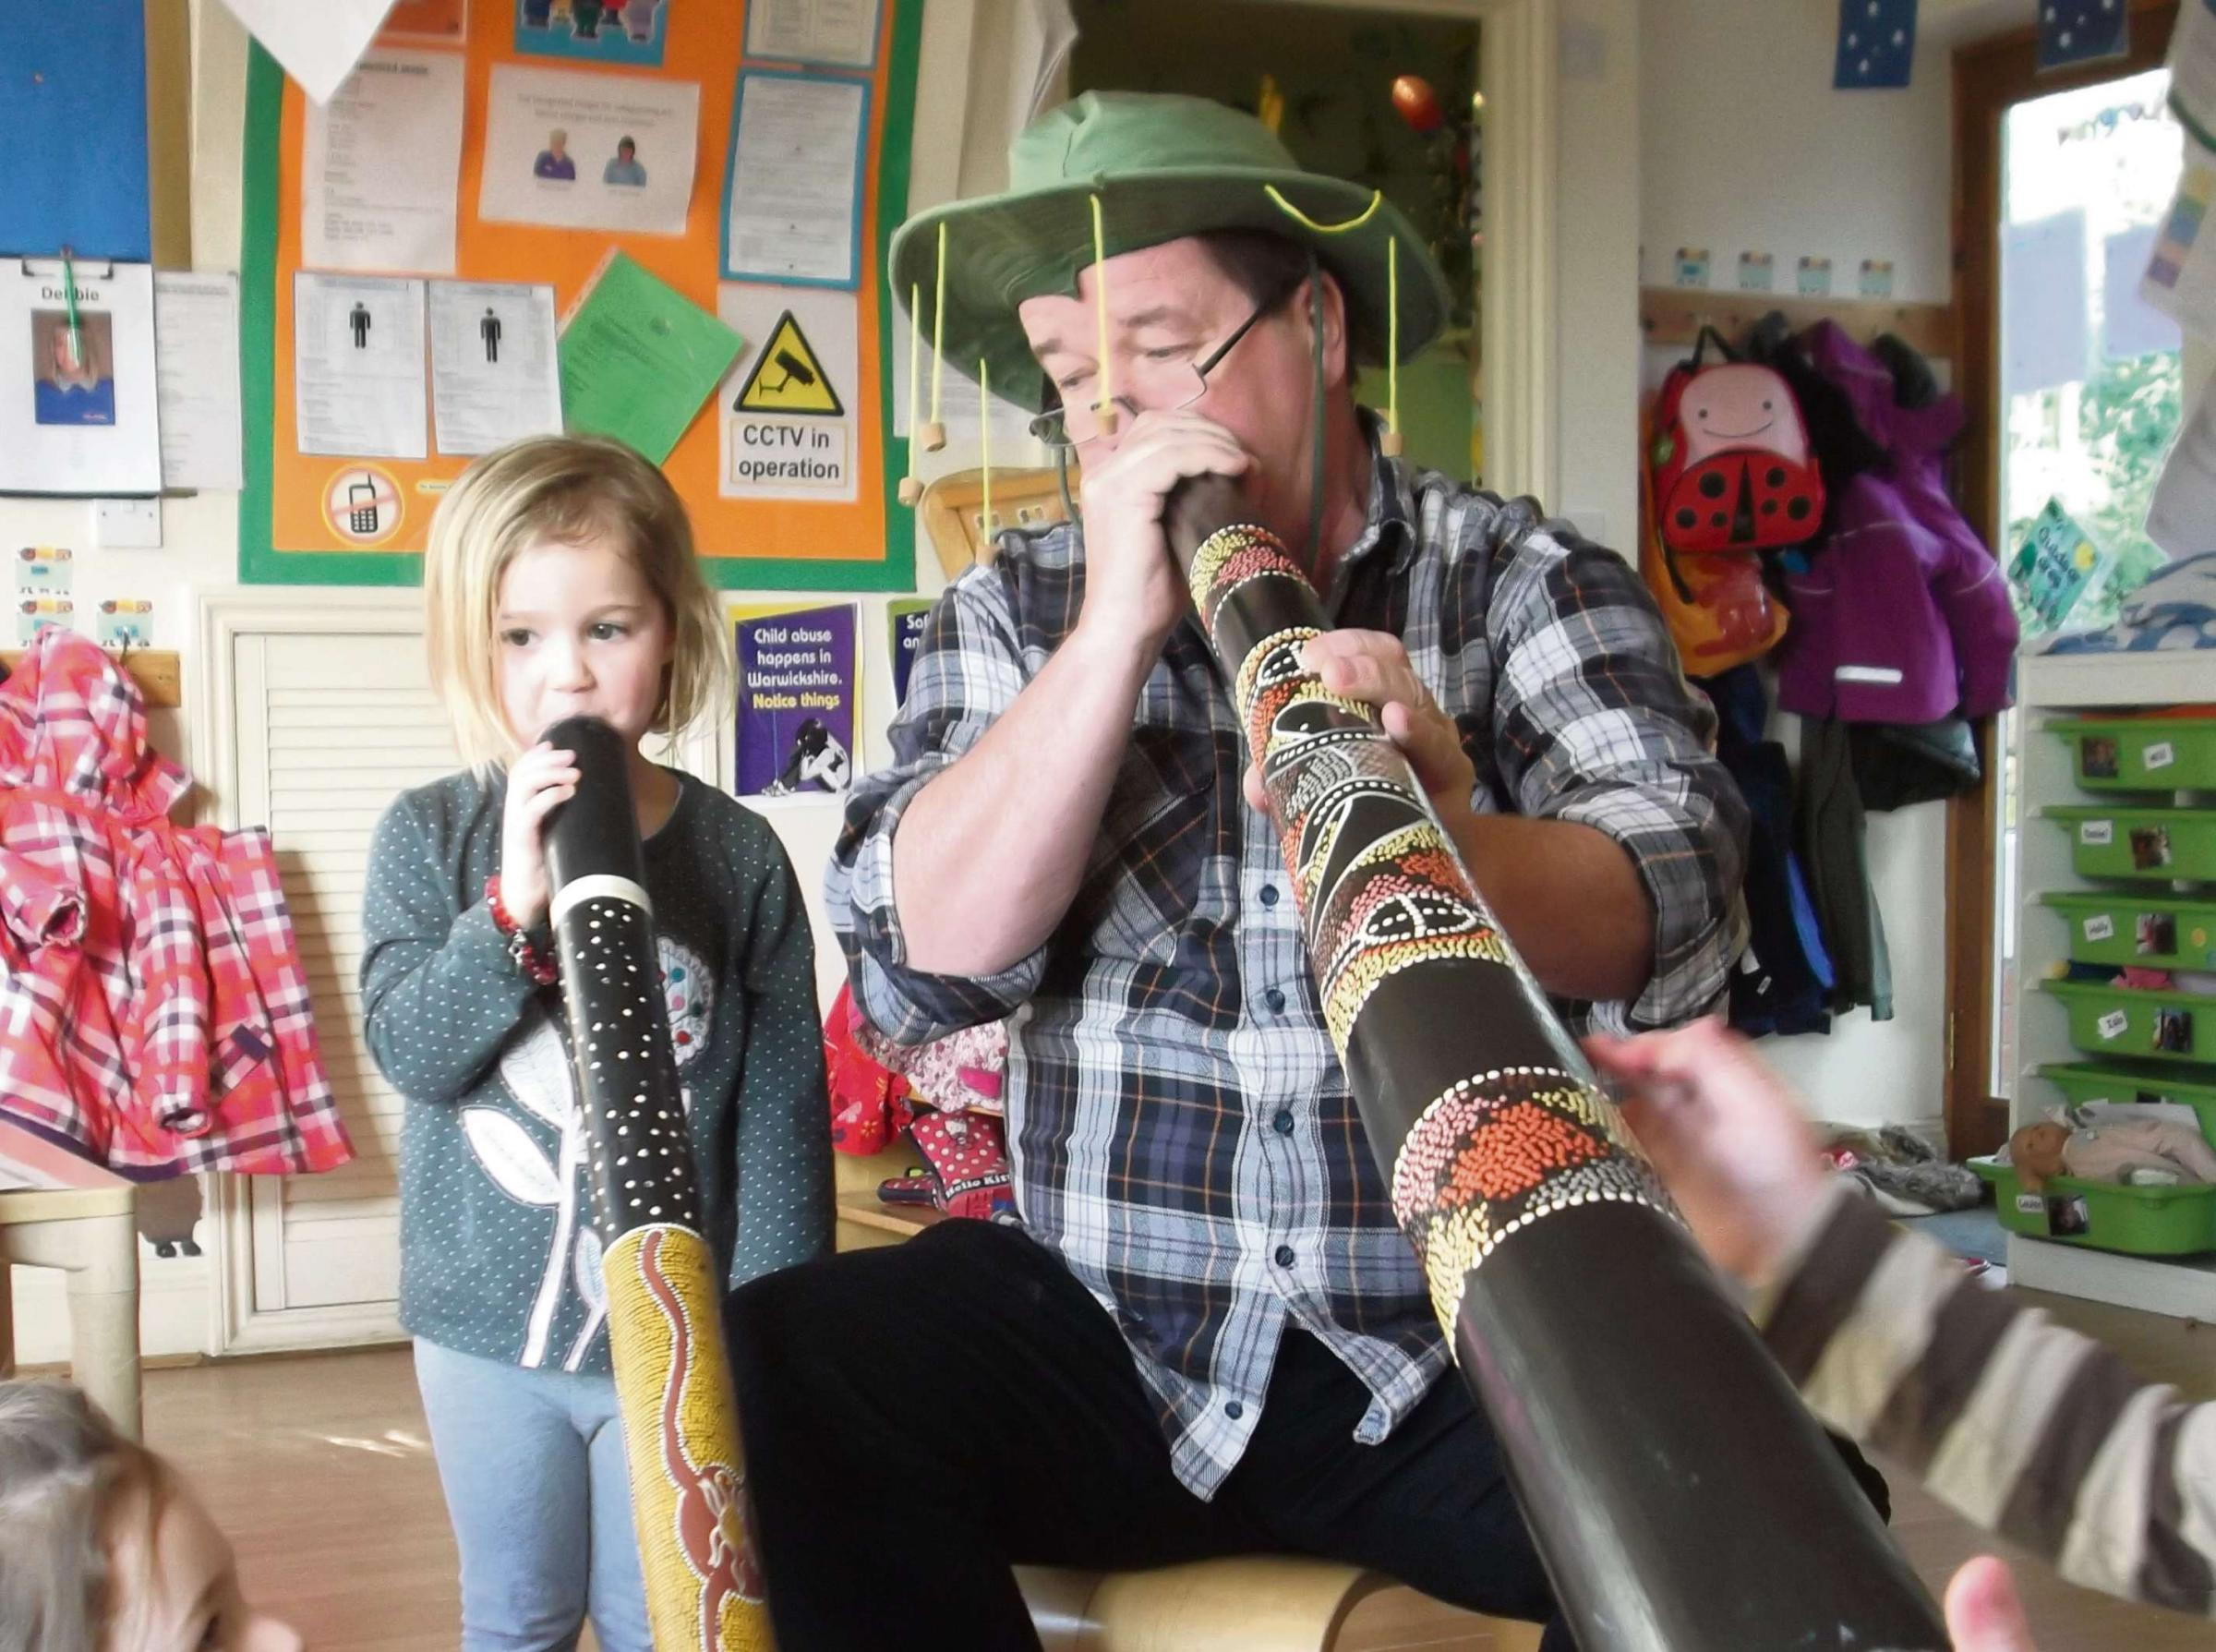 Grace Conway, aged 3, learning to play the didgeridoo with Steve Taylor, who learnt to play the didgeridoo while travelling in Australia 10 years ago.